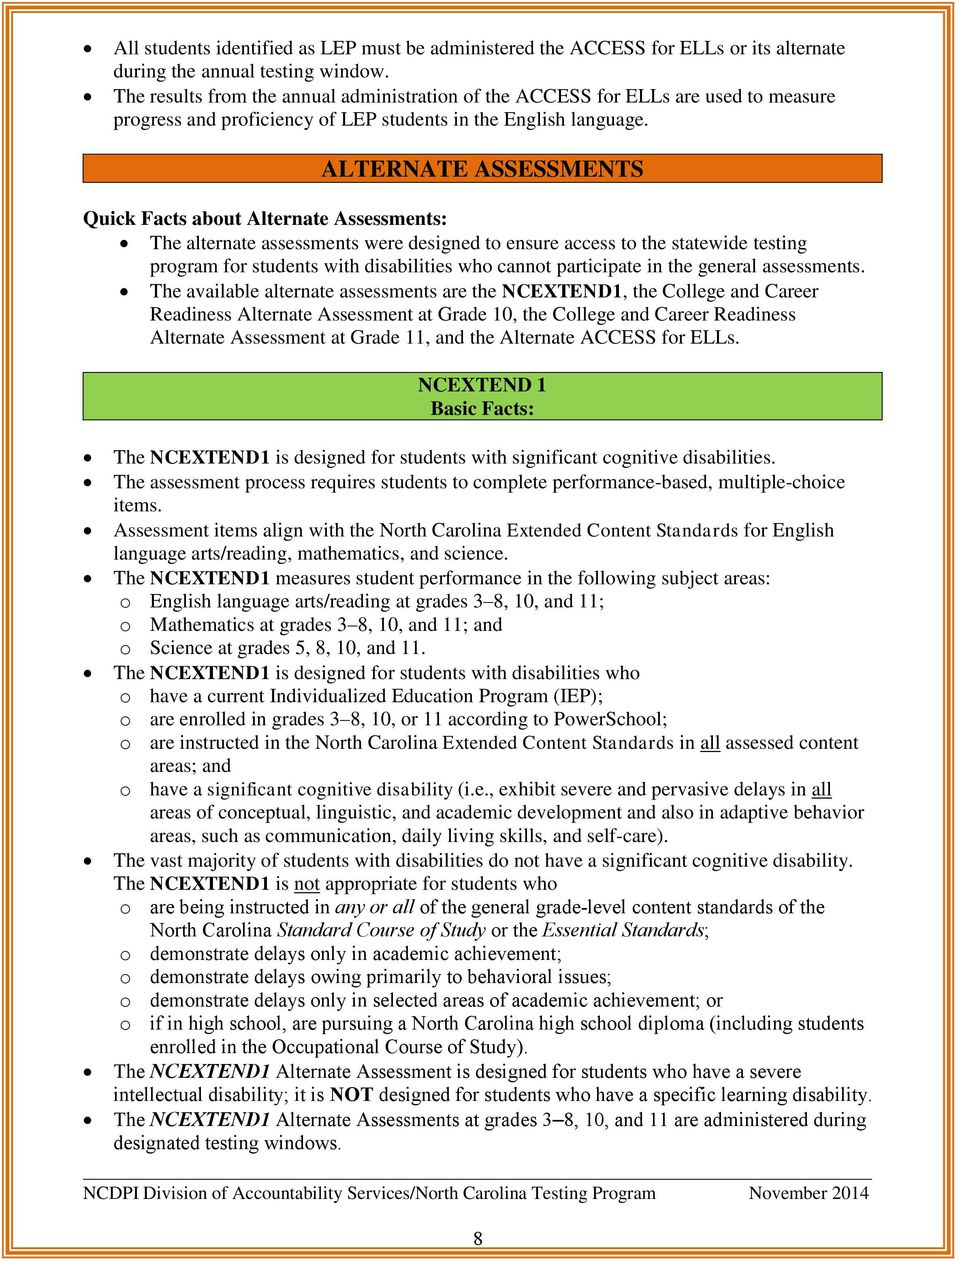 ALTERNATE ASSESSMENTS Quick Facts about Alternate Assessments: The alternate assessments were designed to ensure access to the statewide testing program for students with disabilities who cannot